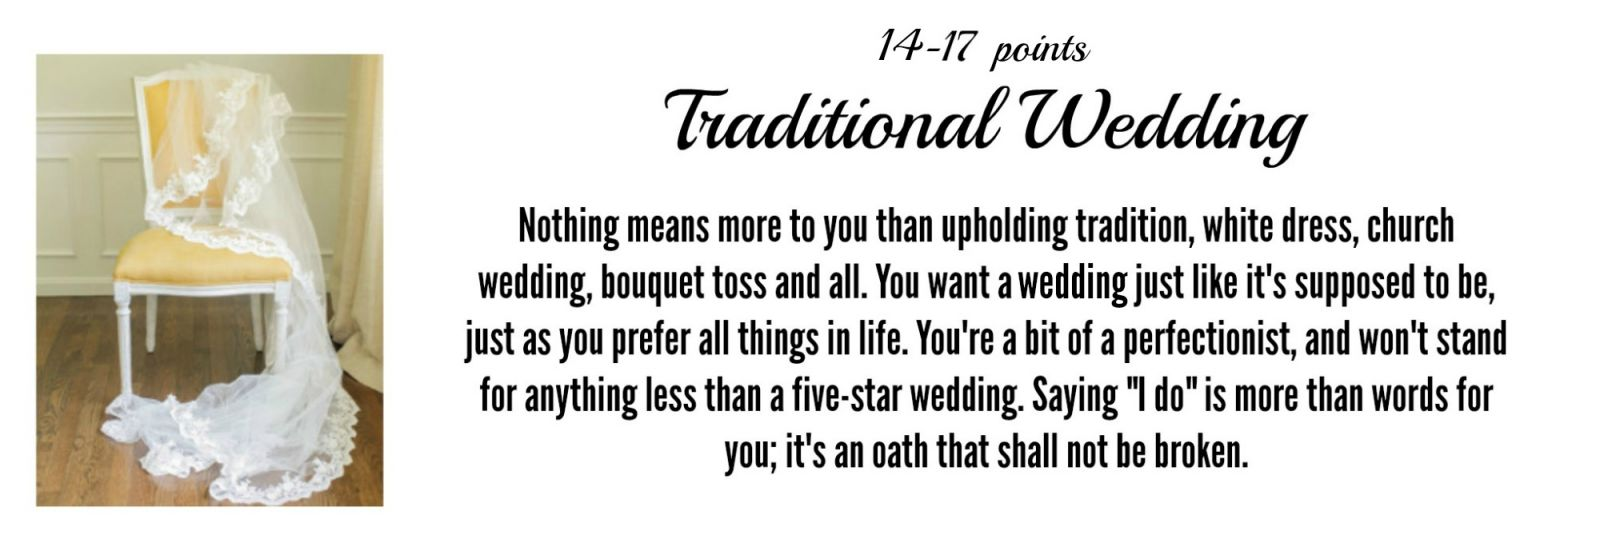 Traditional Wedding Ideas